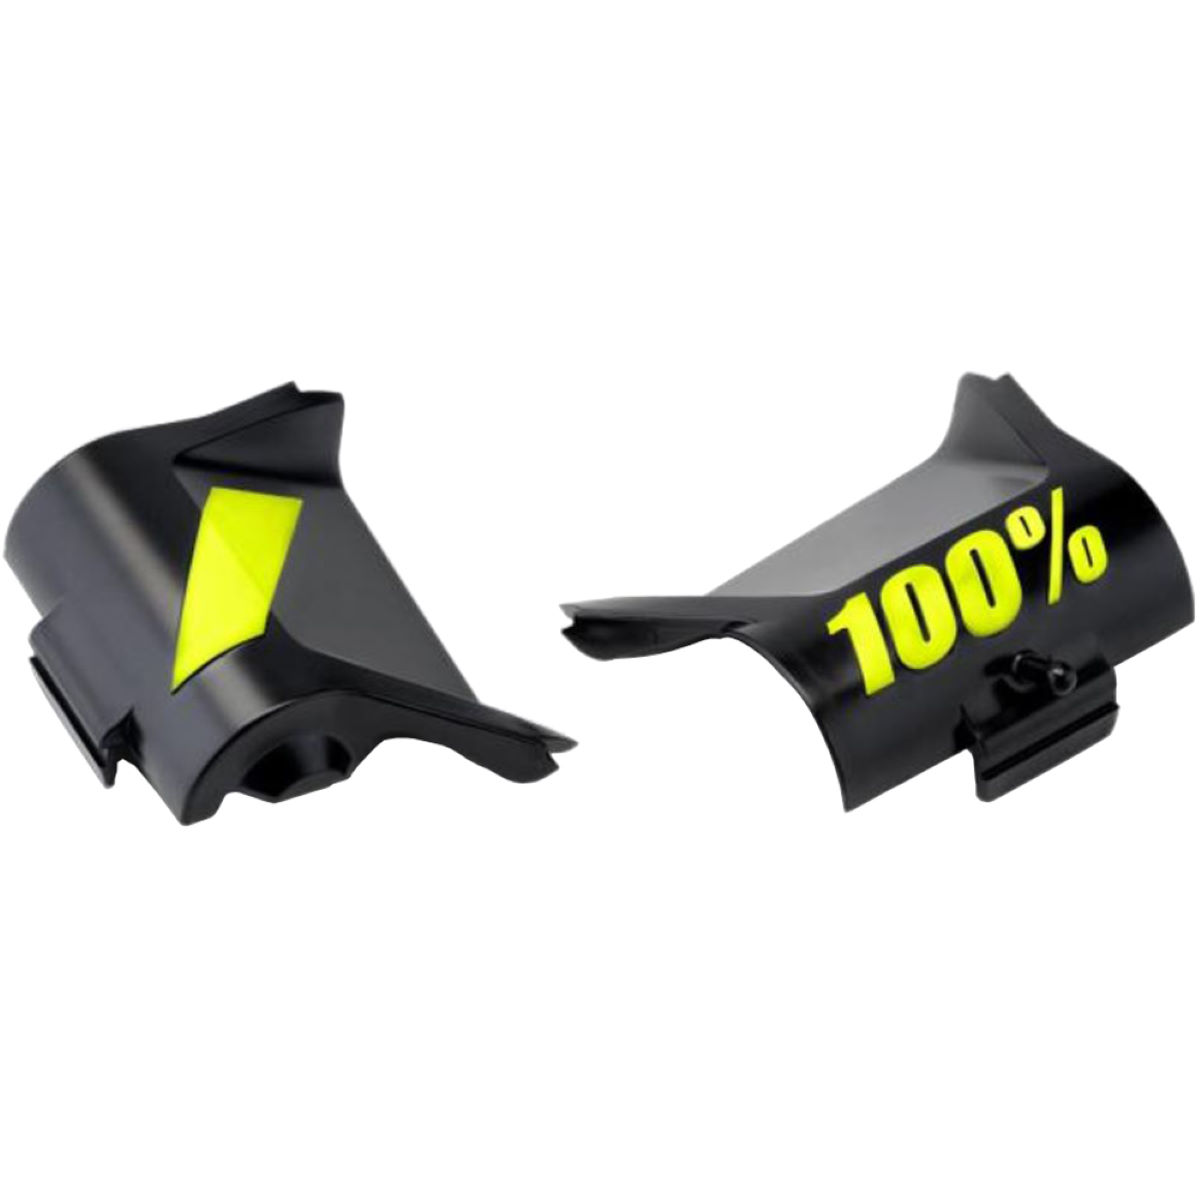 100% Accuri Forecast Canister Cover Kit   Cycling Goggles